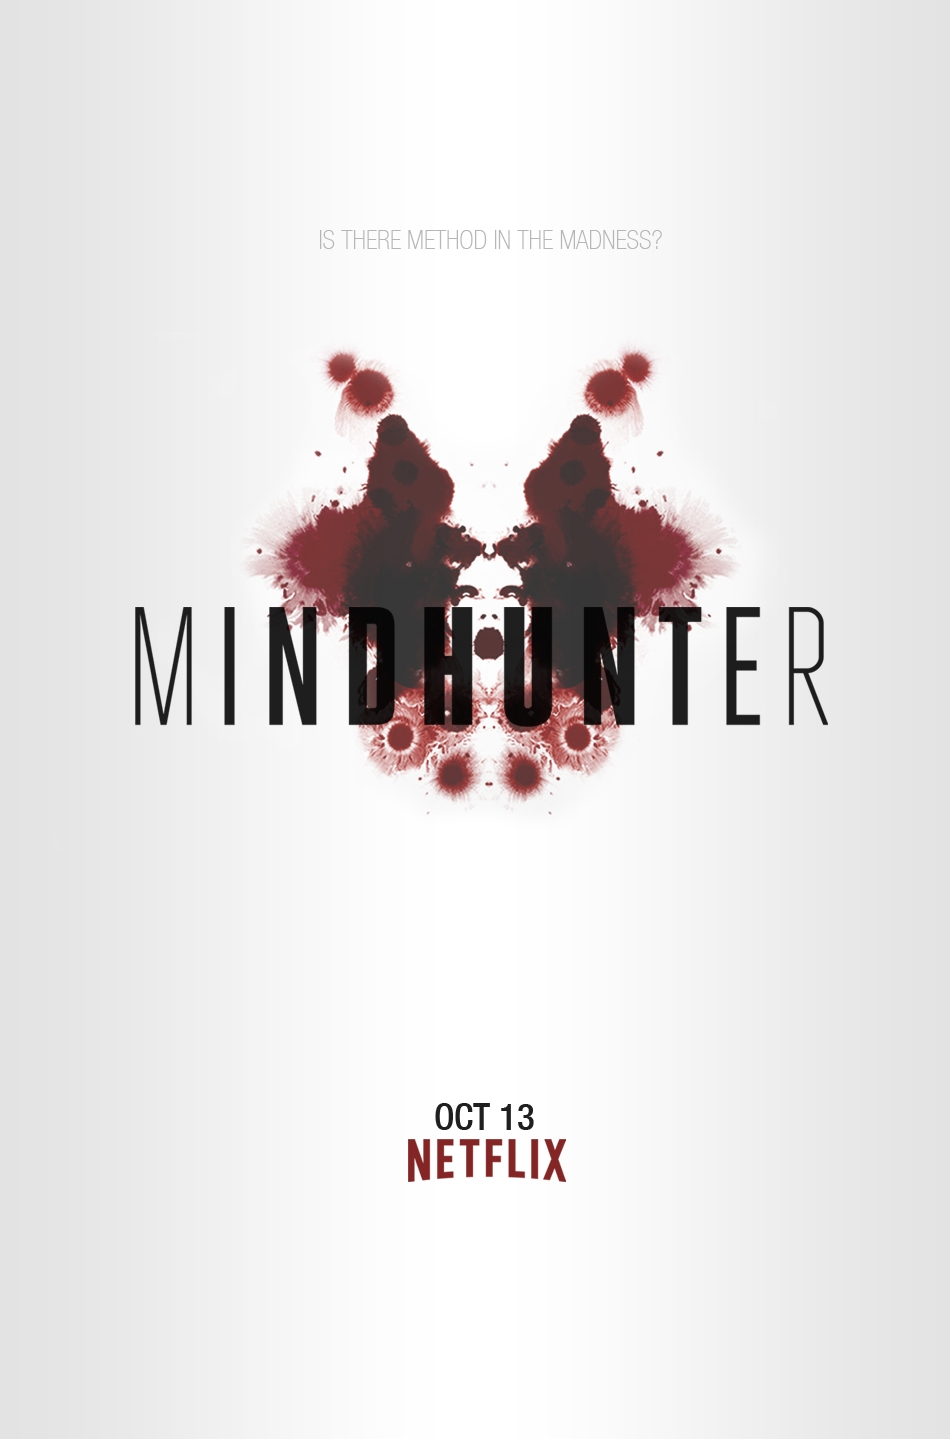 Mindhunter (2017) - Cameras by Camtec Motion Picture Cameras